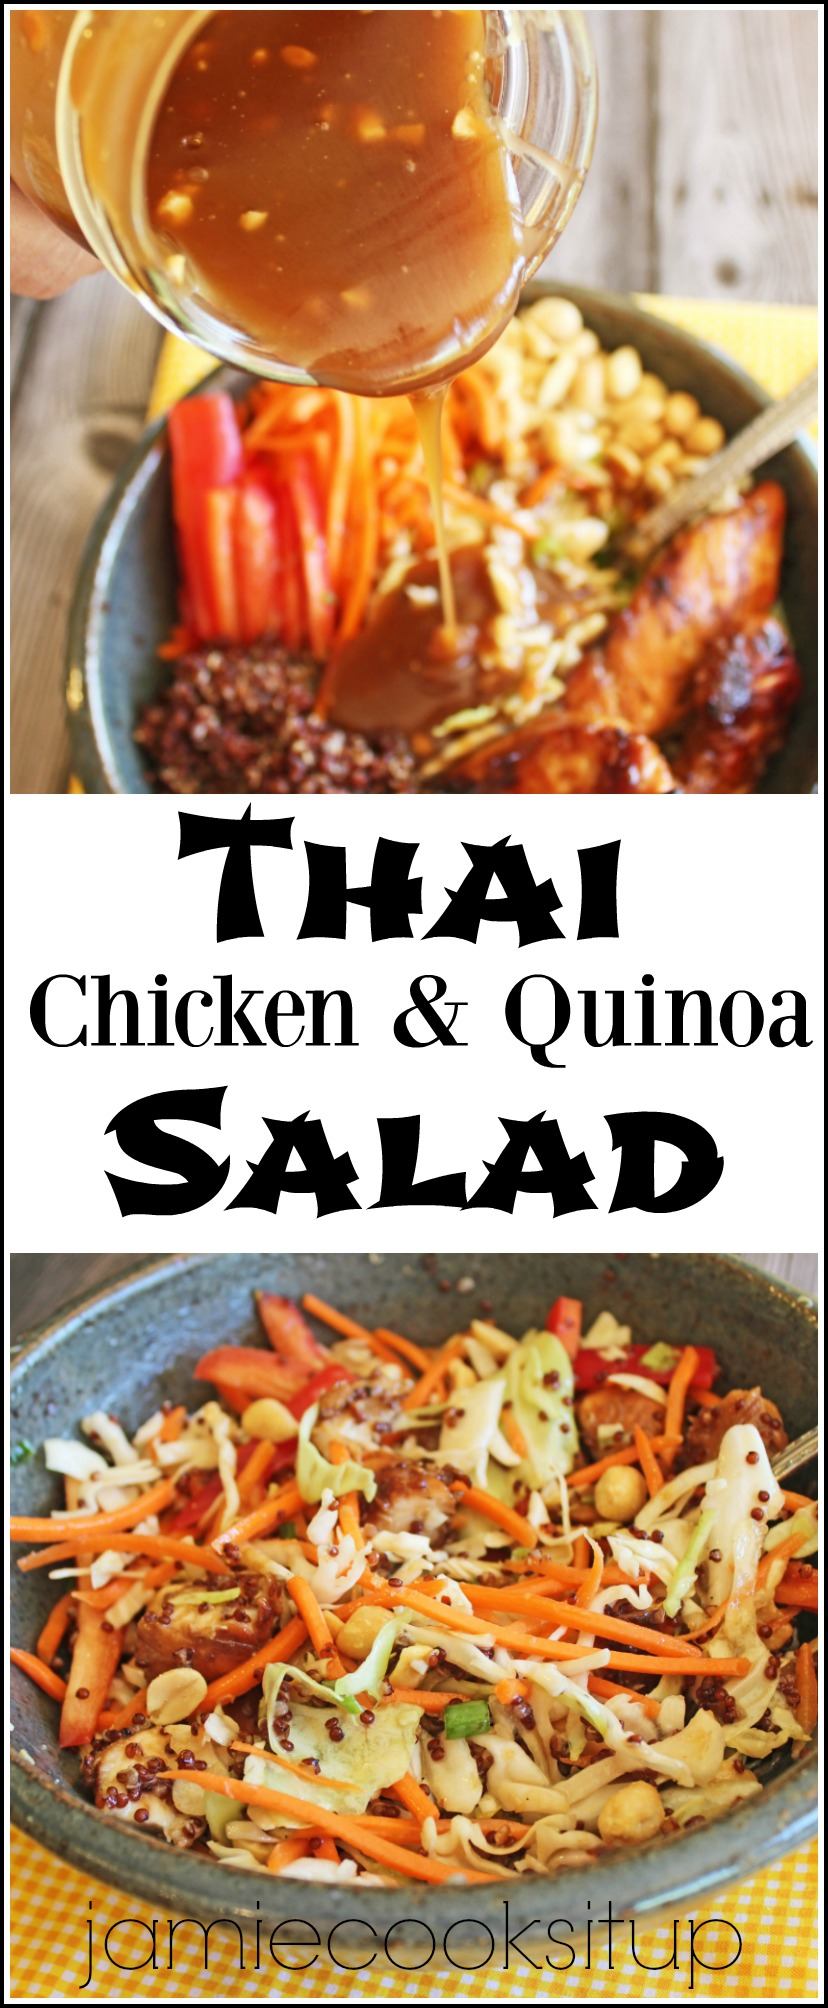 thai-chicken-and-quinoa-salad